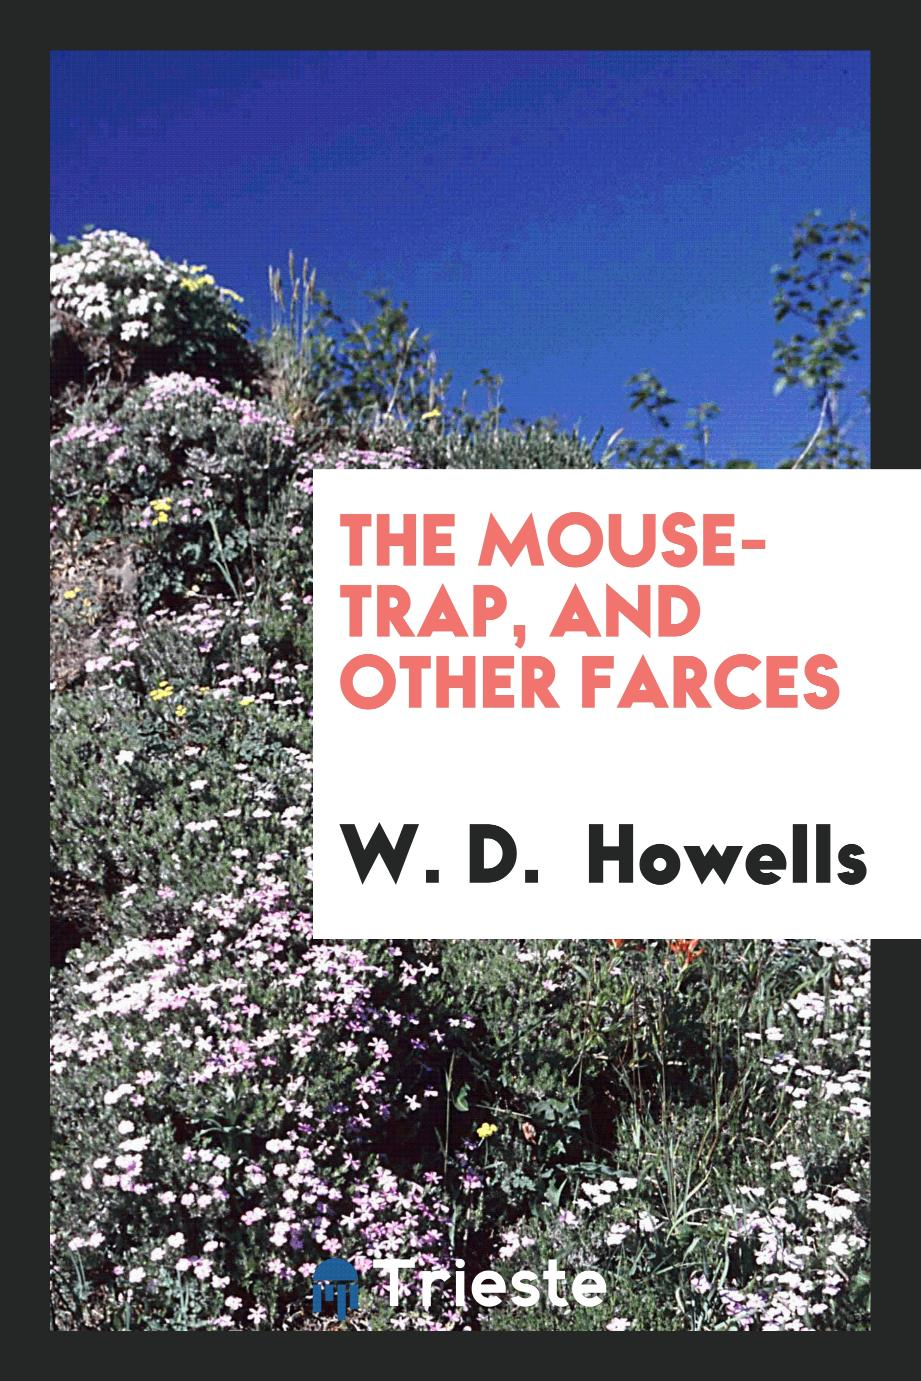 The mouse-trap, and other farces